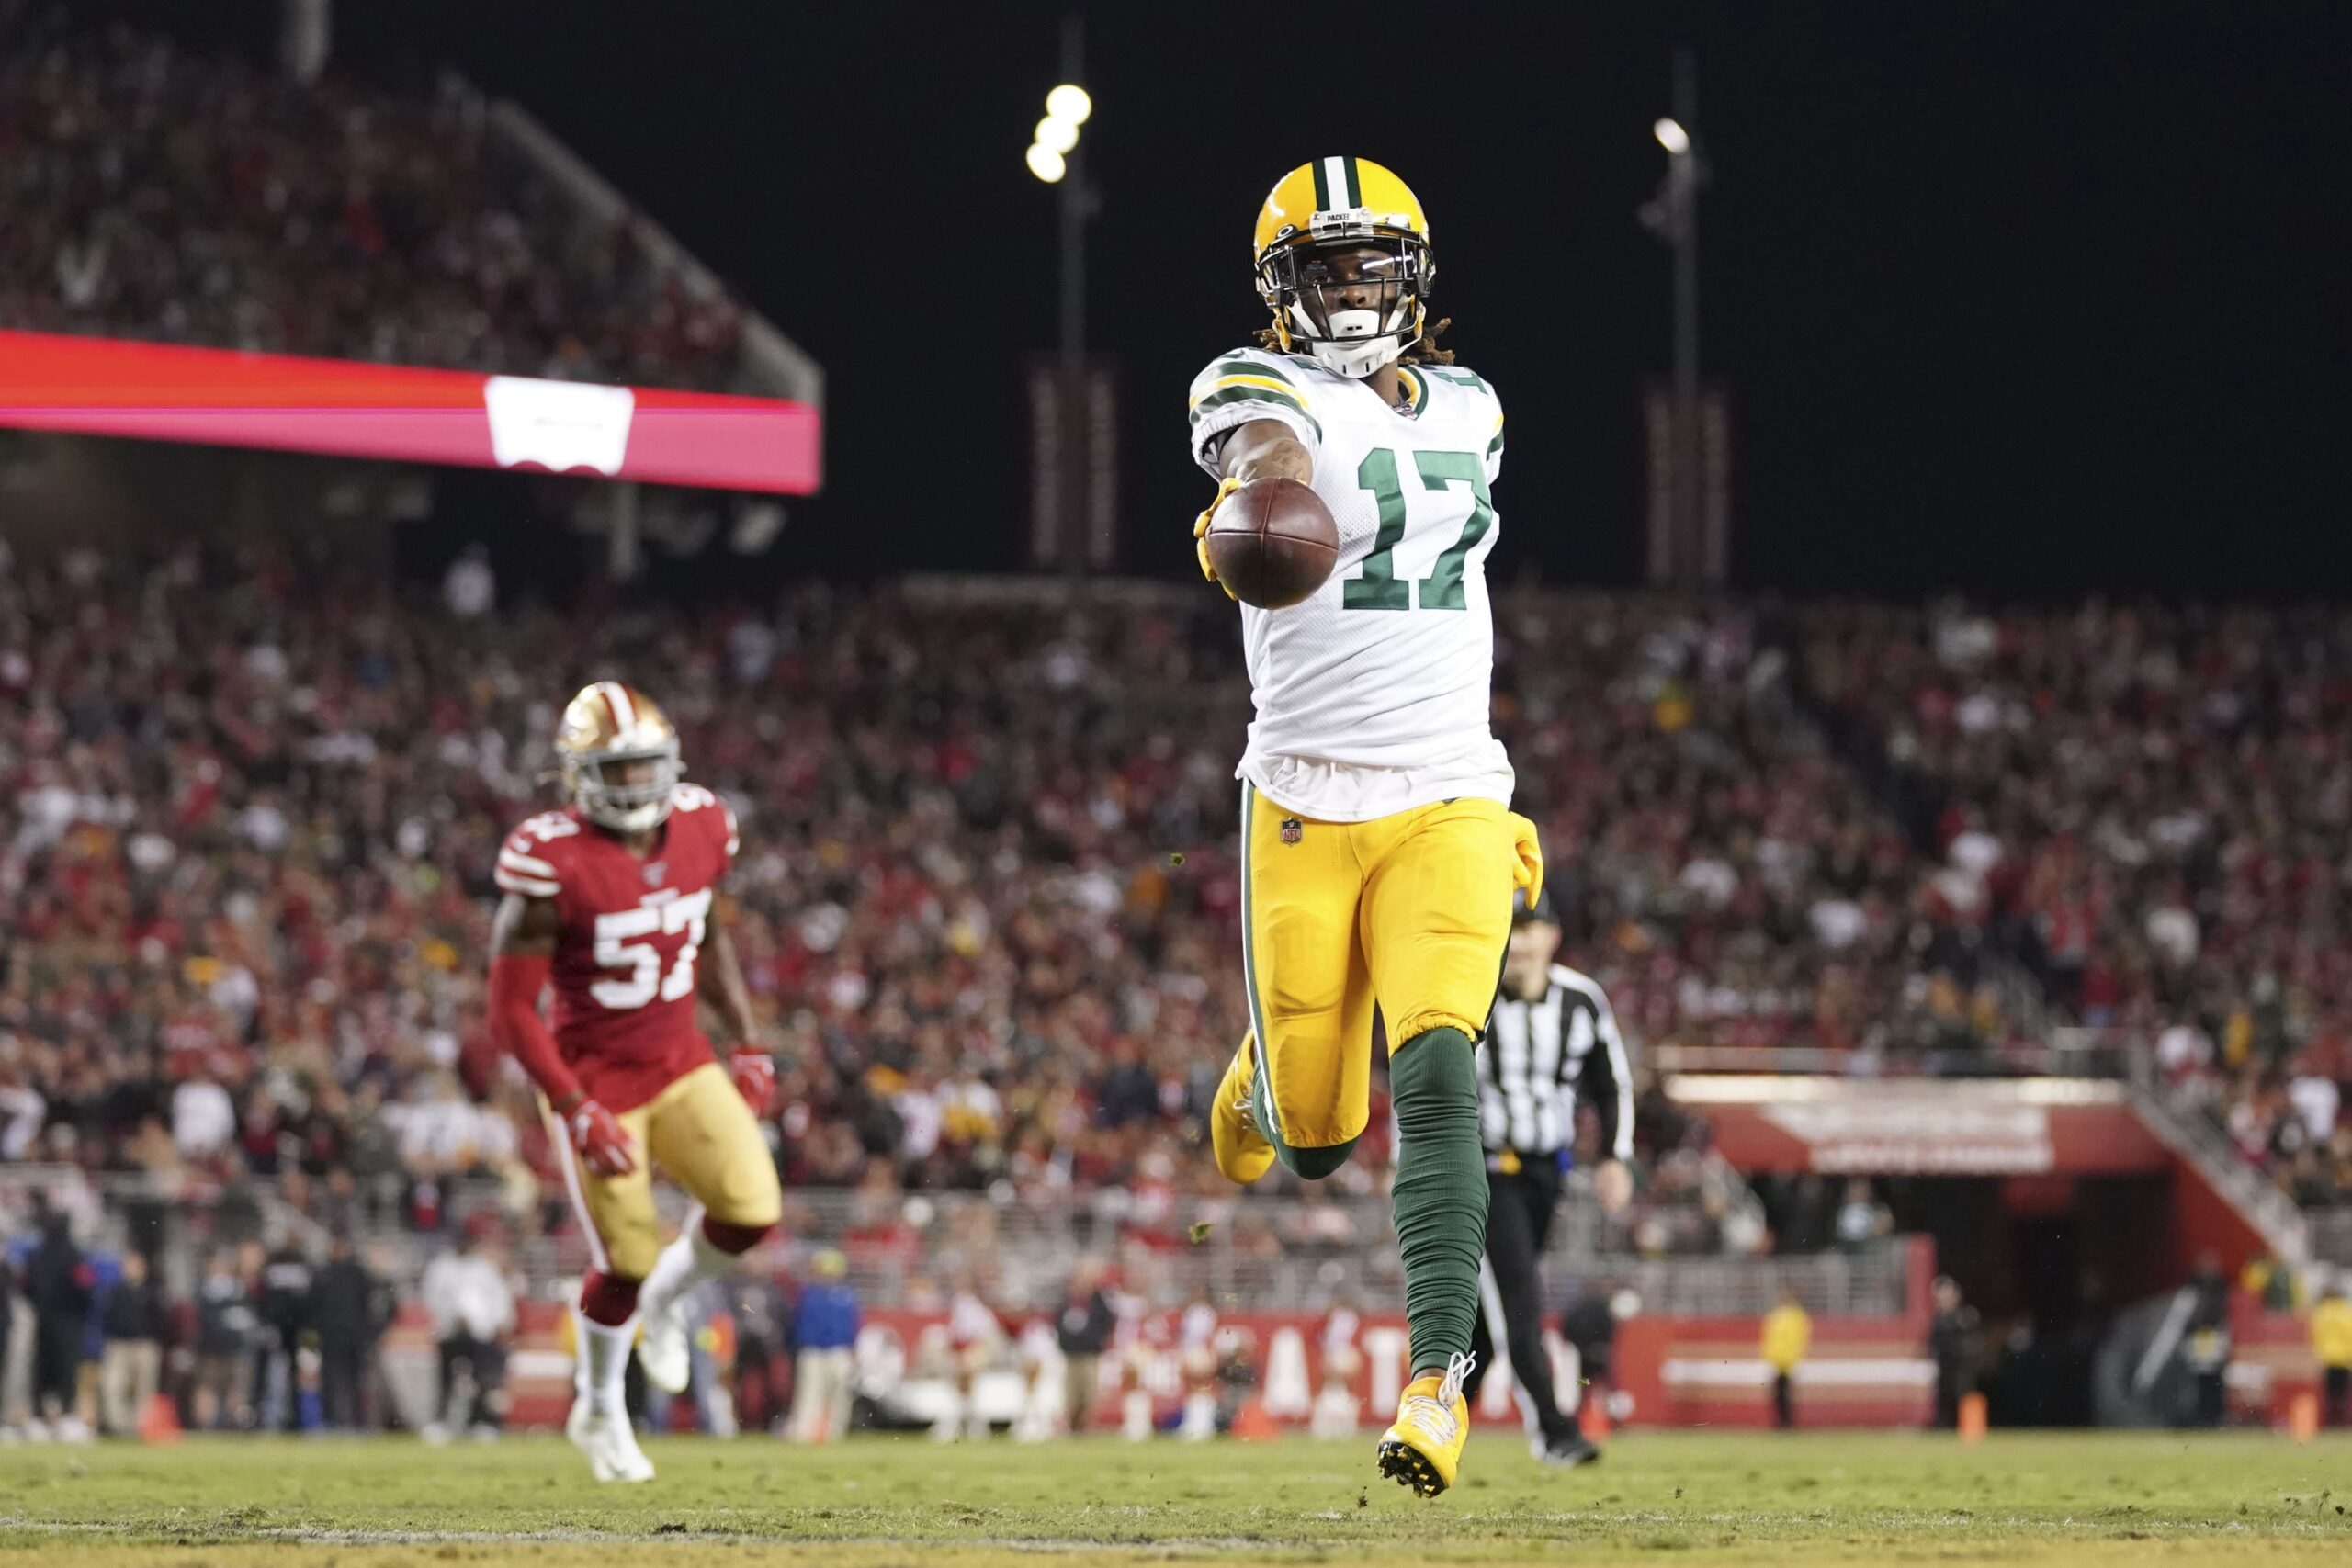 Packers Davante Adams may be greatest WR in franchise history